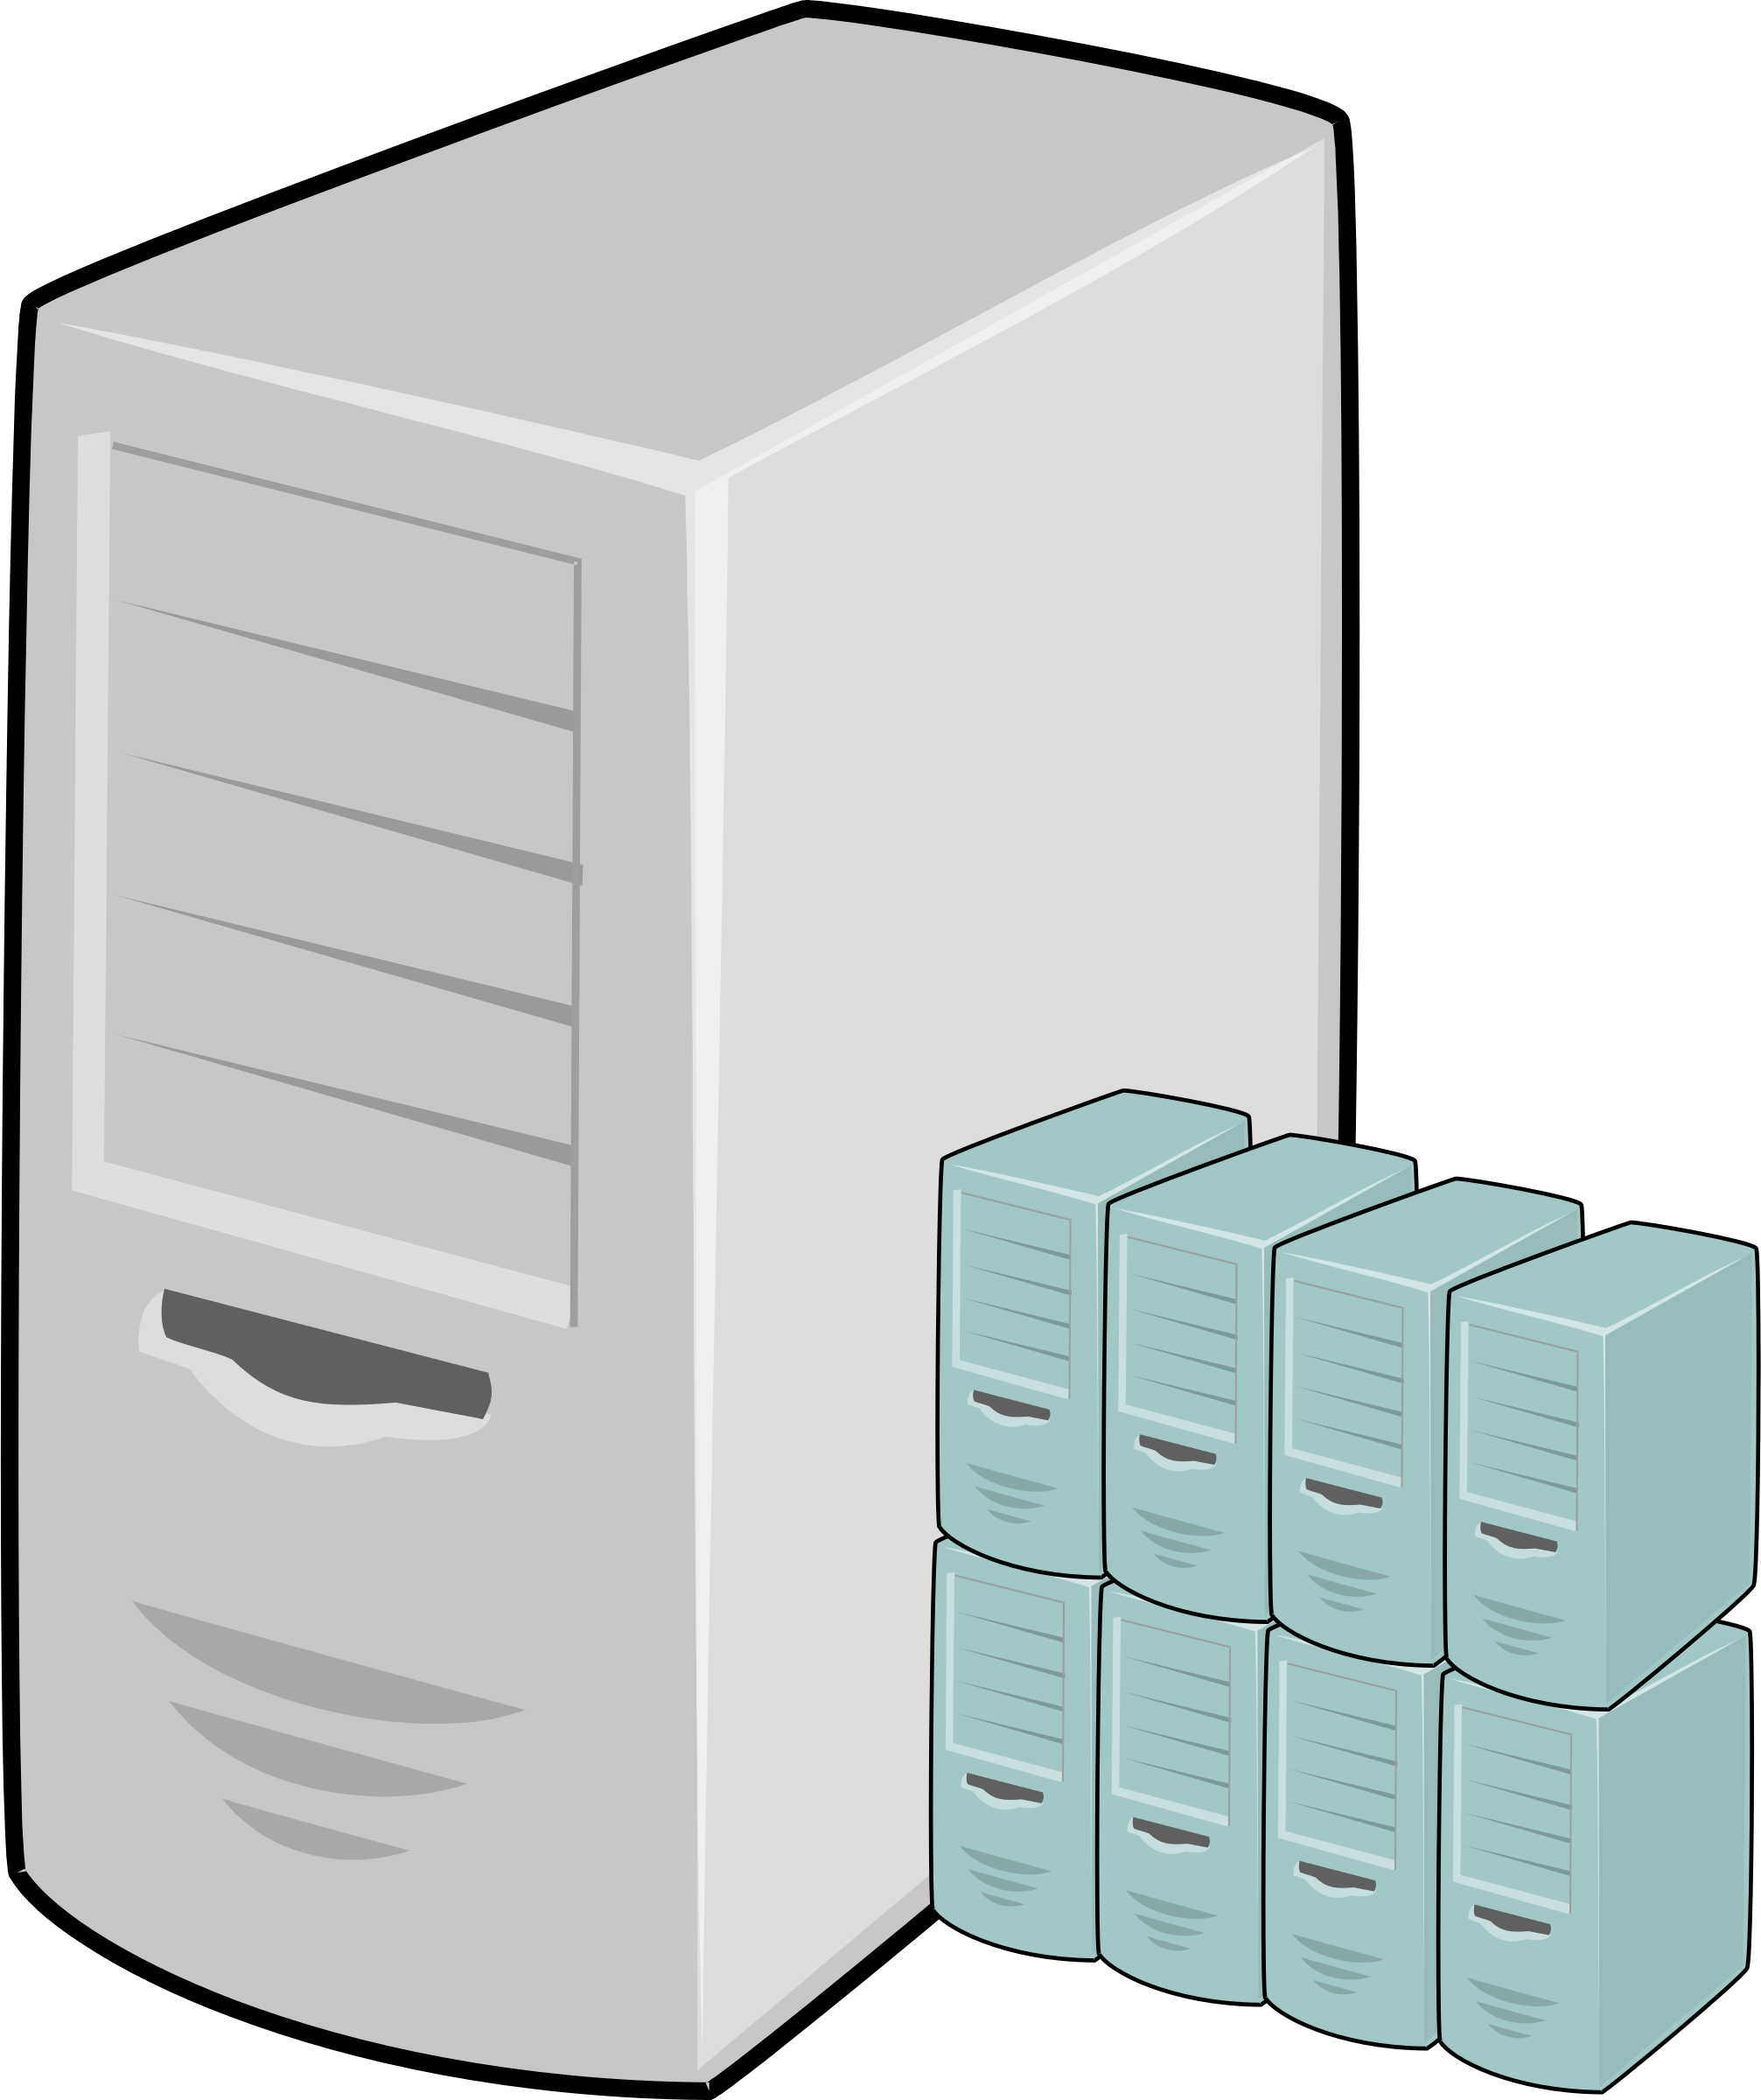 clipart free stock Web server clipart. Virtual machine host icons